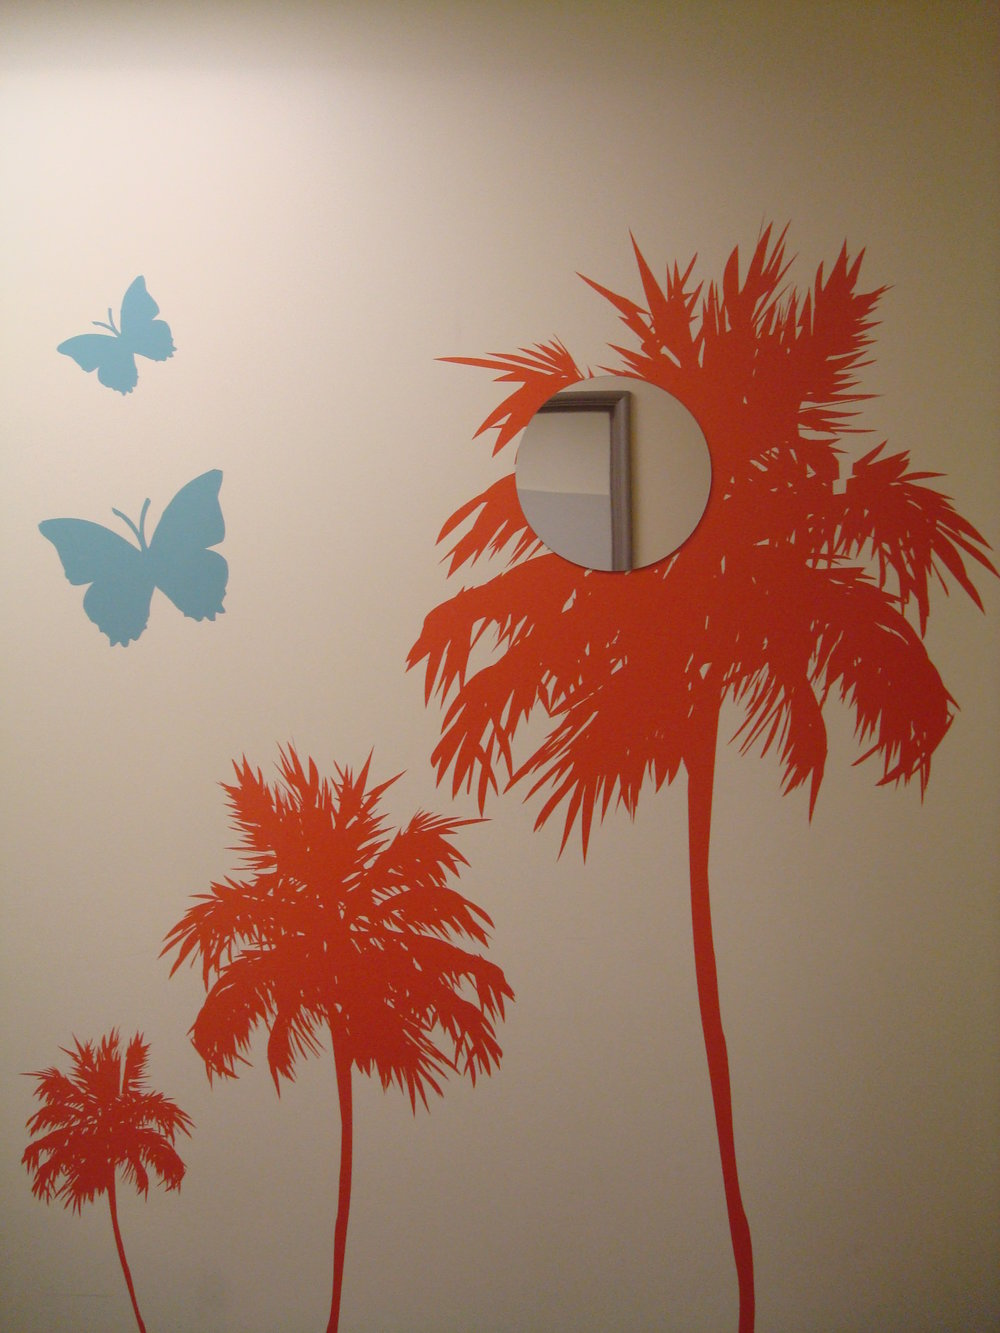 Wall Tattoo Mural by Fine Art Matters for a Children's Hearing Center in LA